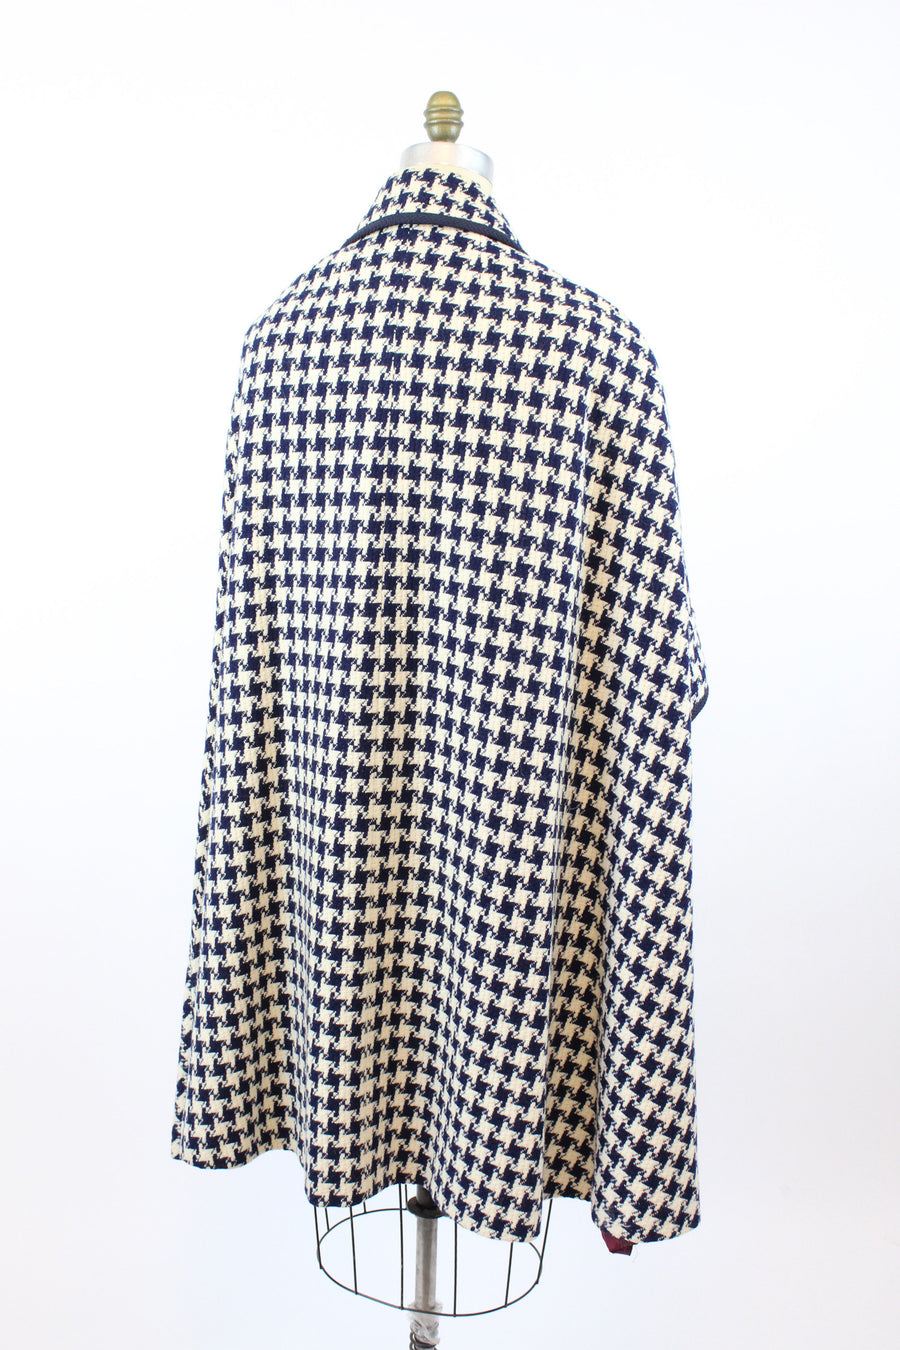 1960s houndstooth cape | woven wool poncho | small - large